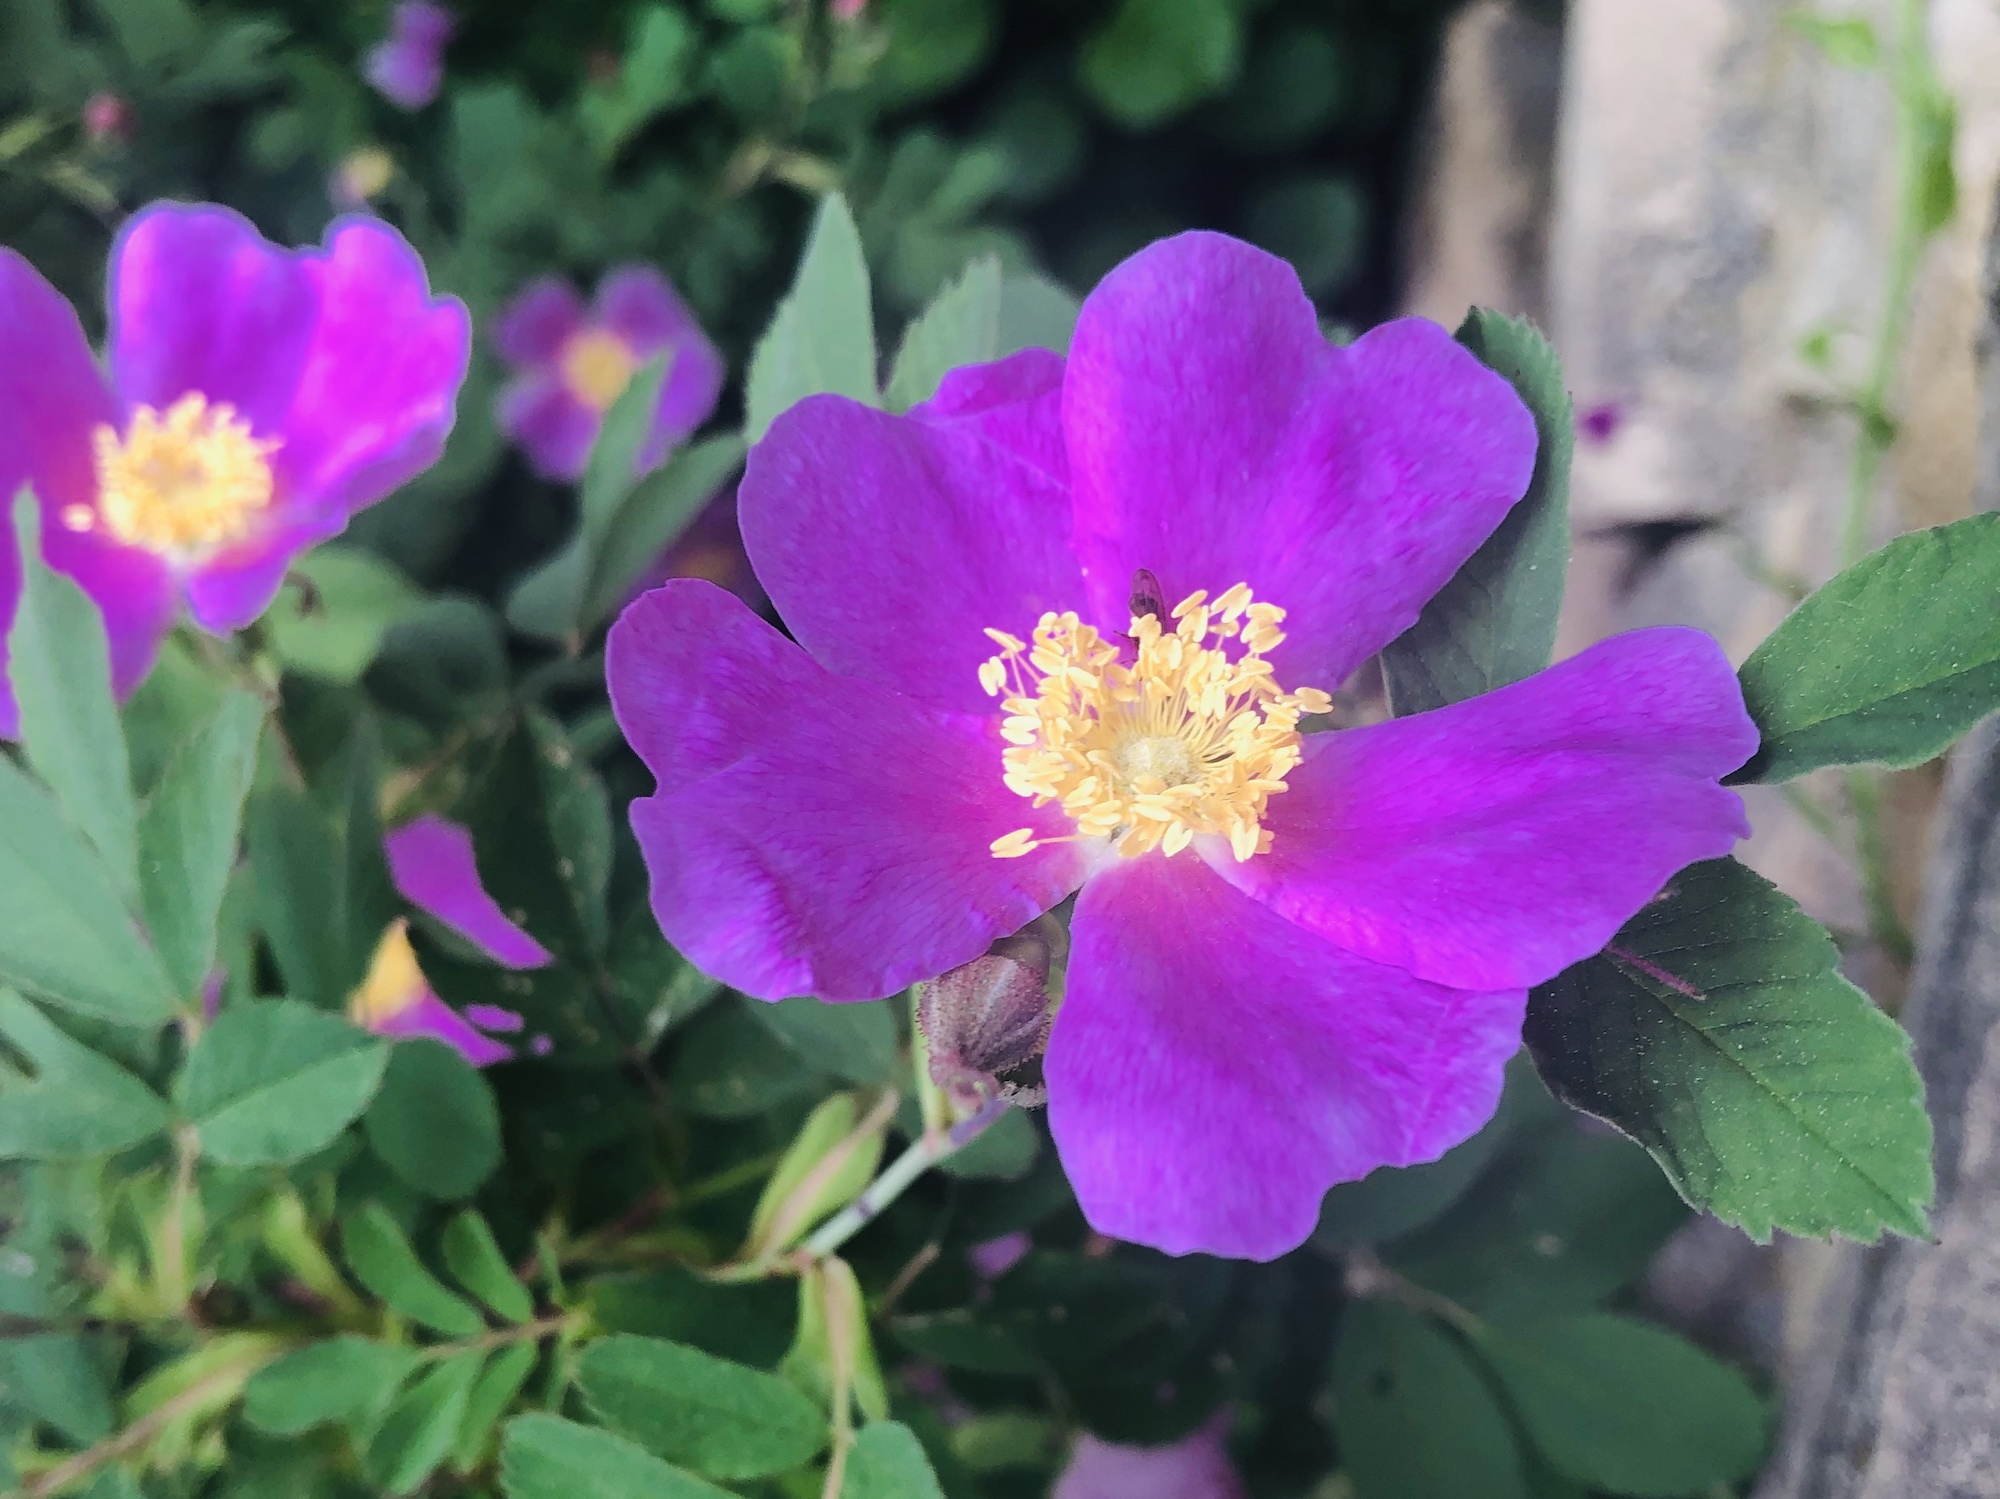 Prarie Rose by Duck Pond stone wall in Madison, Wisconsin on June 5, 2020.